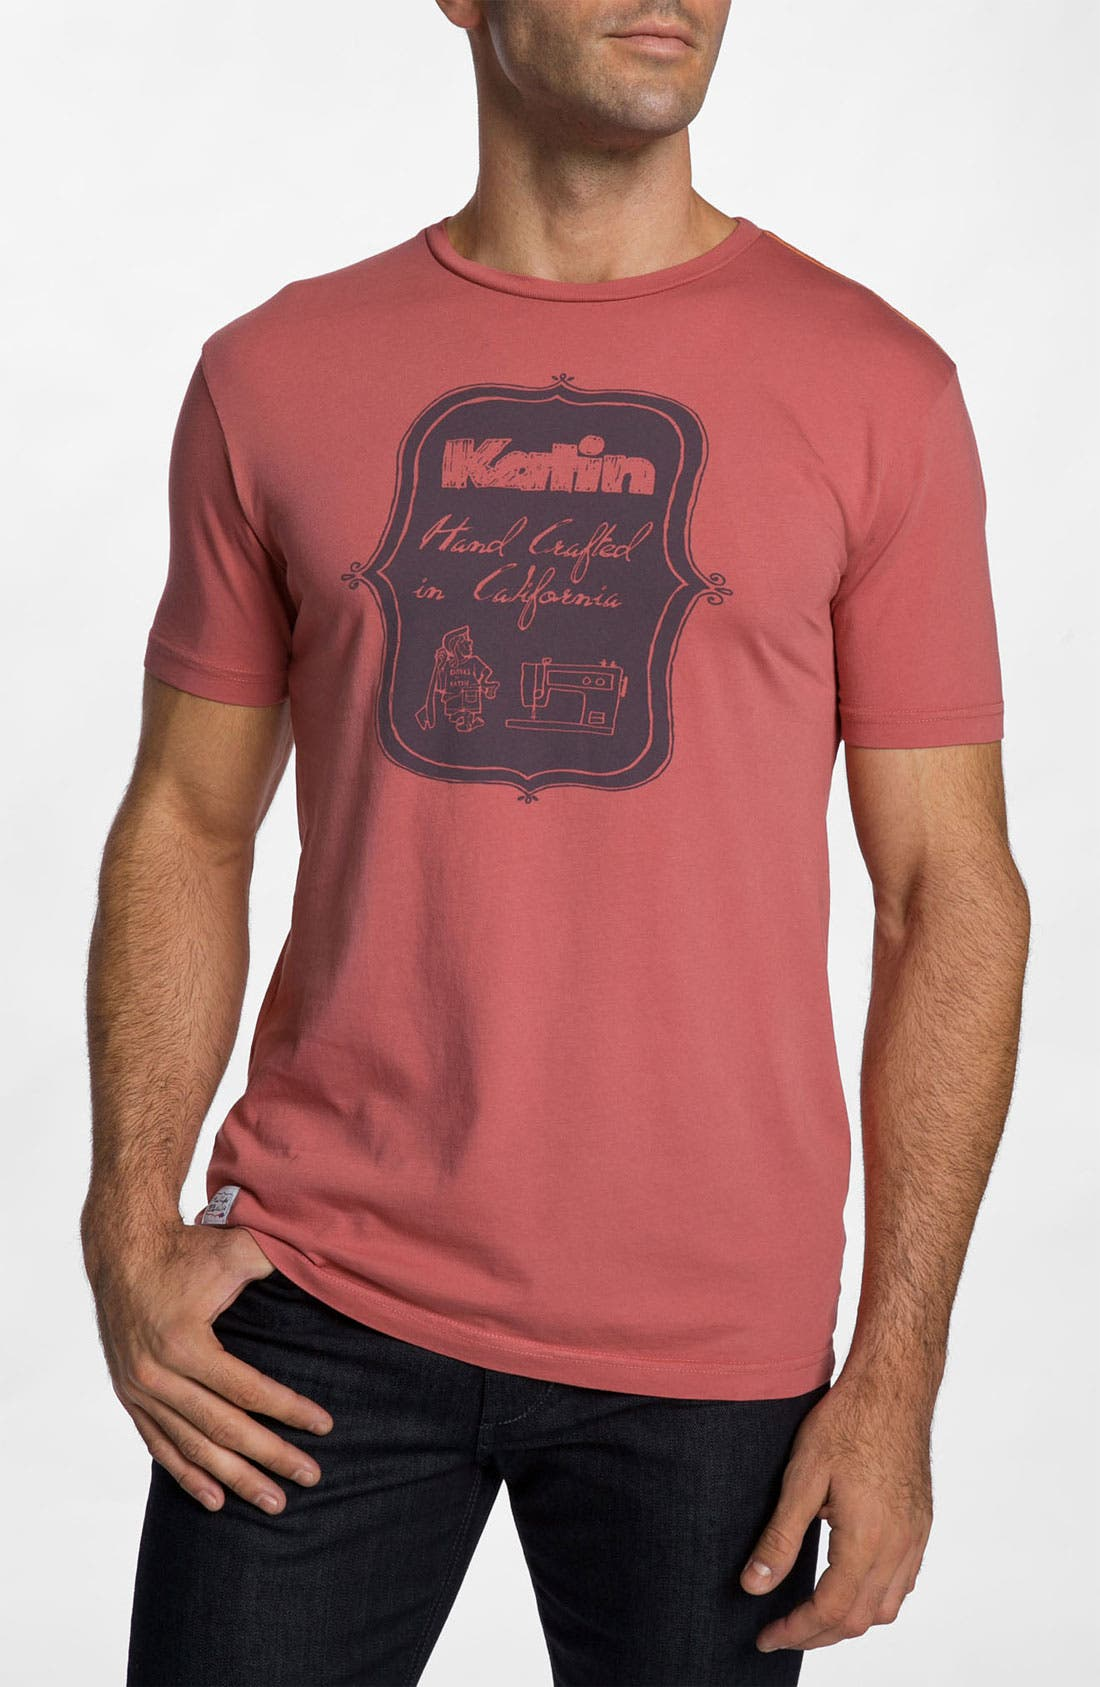 Alternate Image 1 Selected - Katin 'Hand Crafted' Graphic T-Shirt